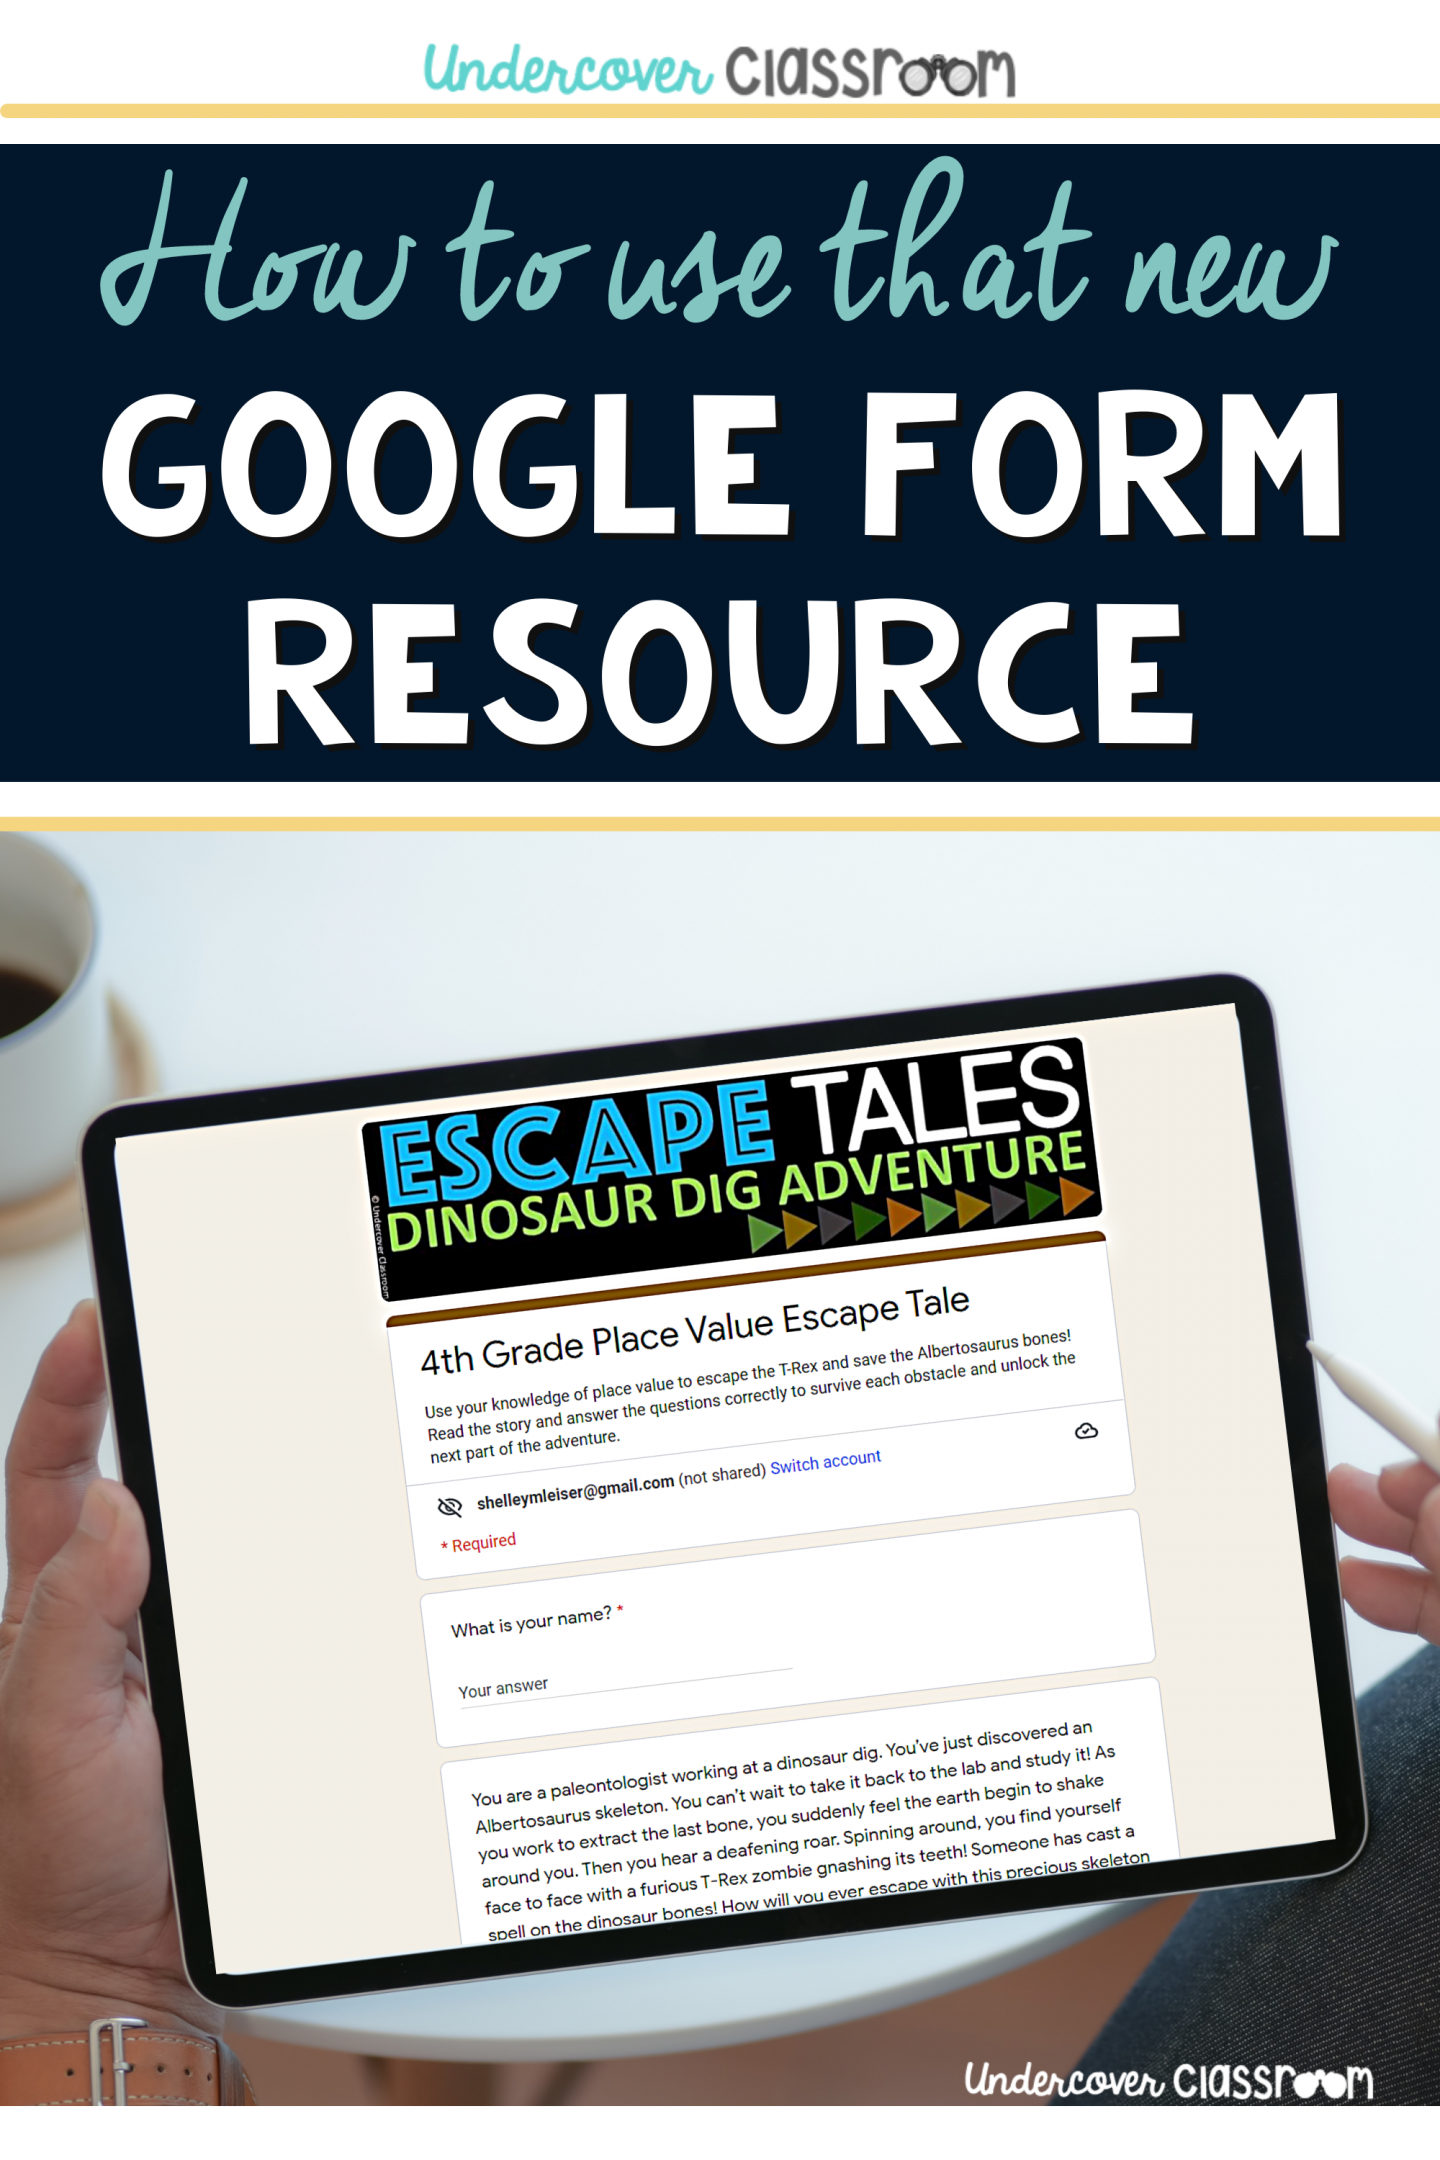 How to use that new google form